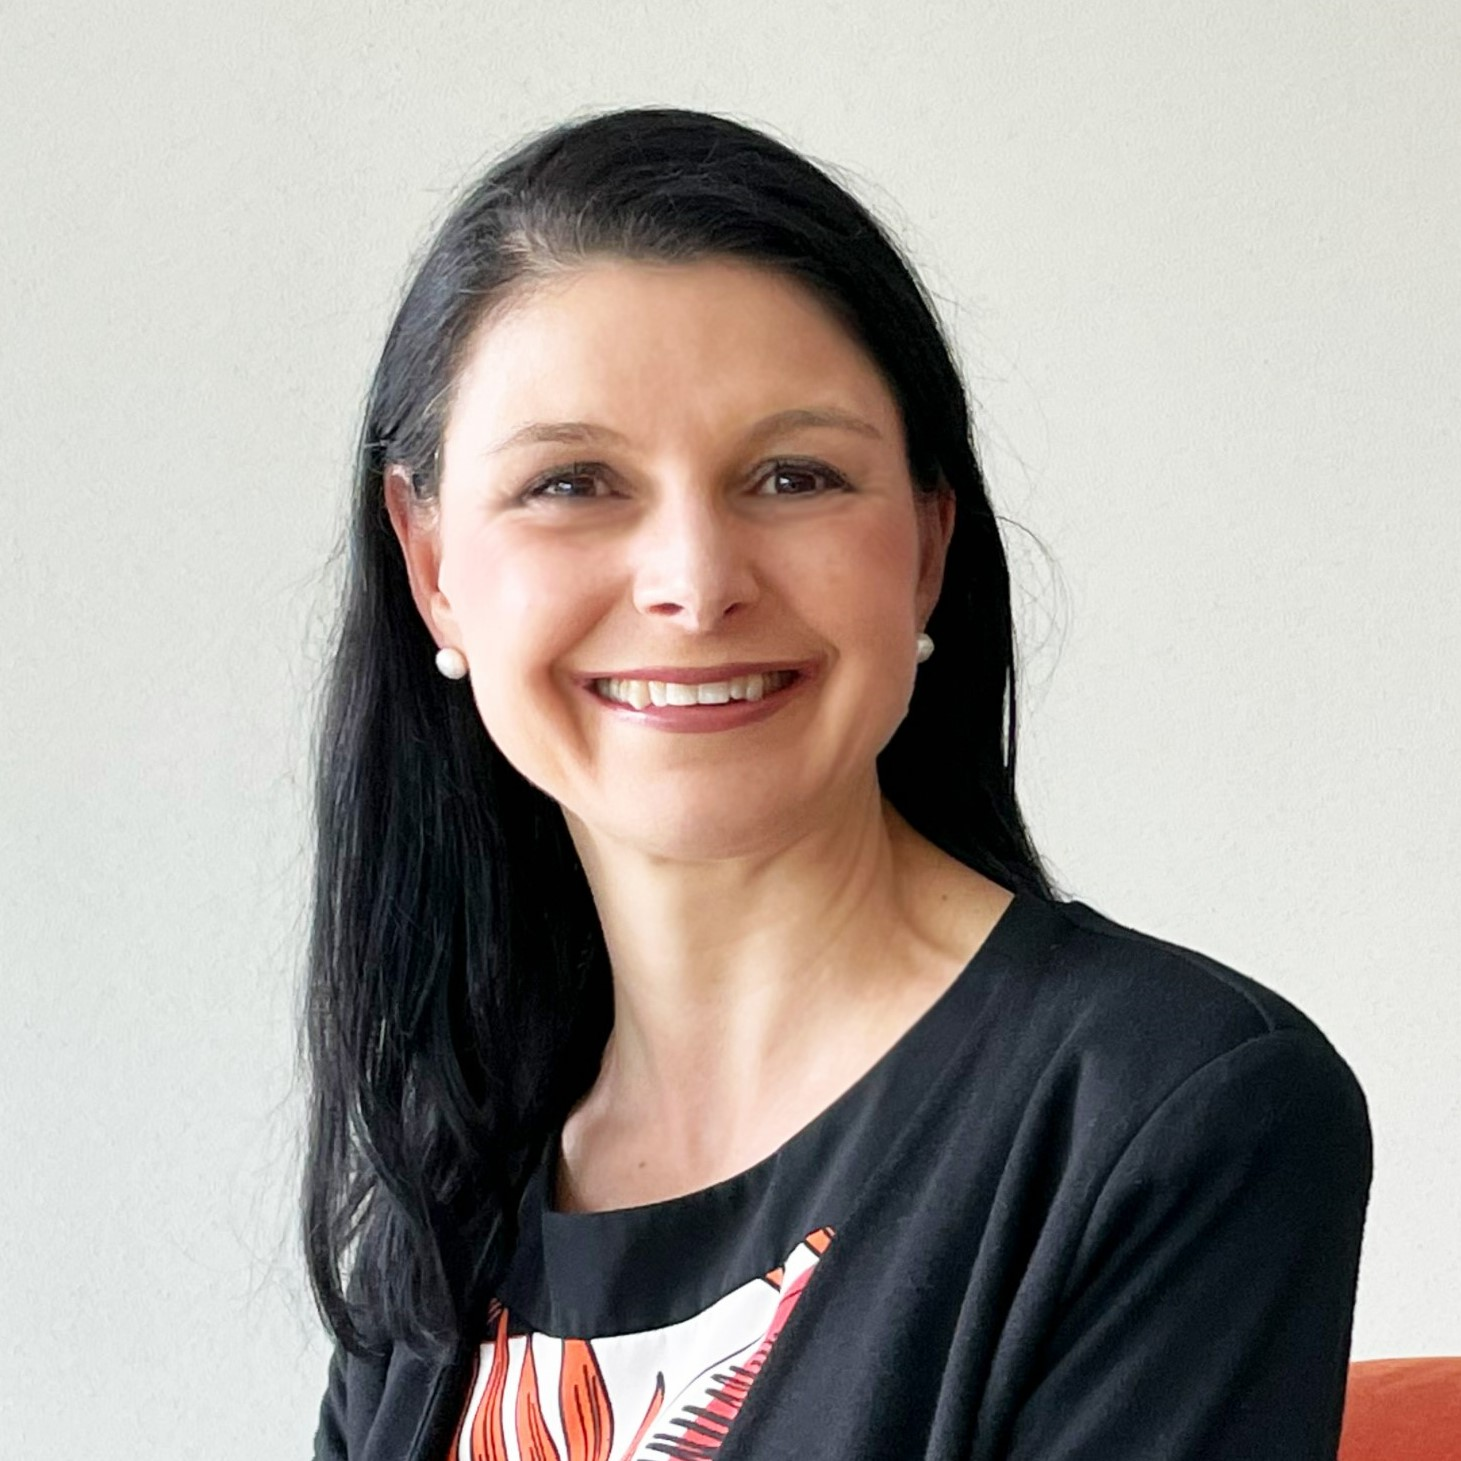 Julie-Anne, TMX newly appointed Executive Director of People